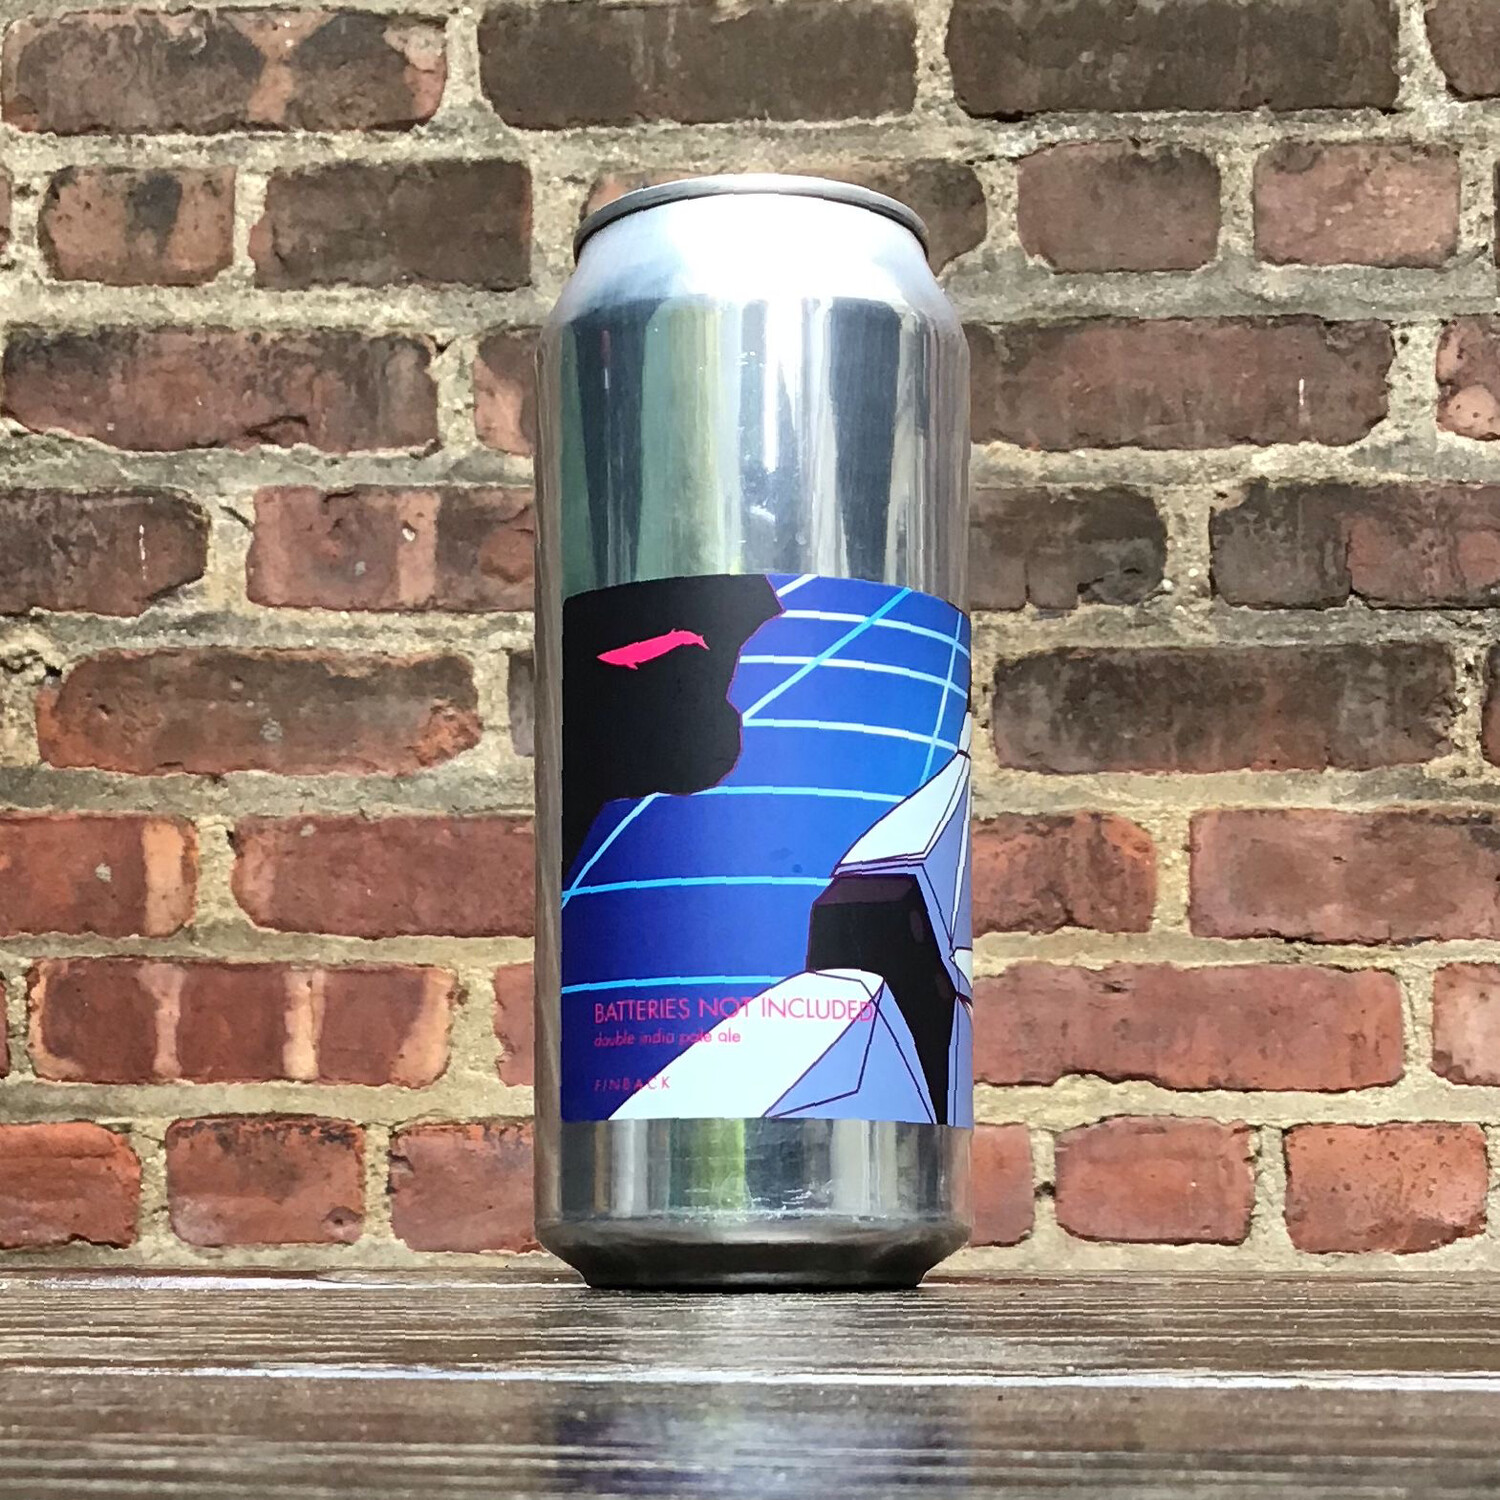 Finback Batteries Not Included